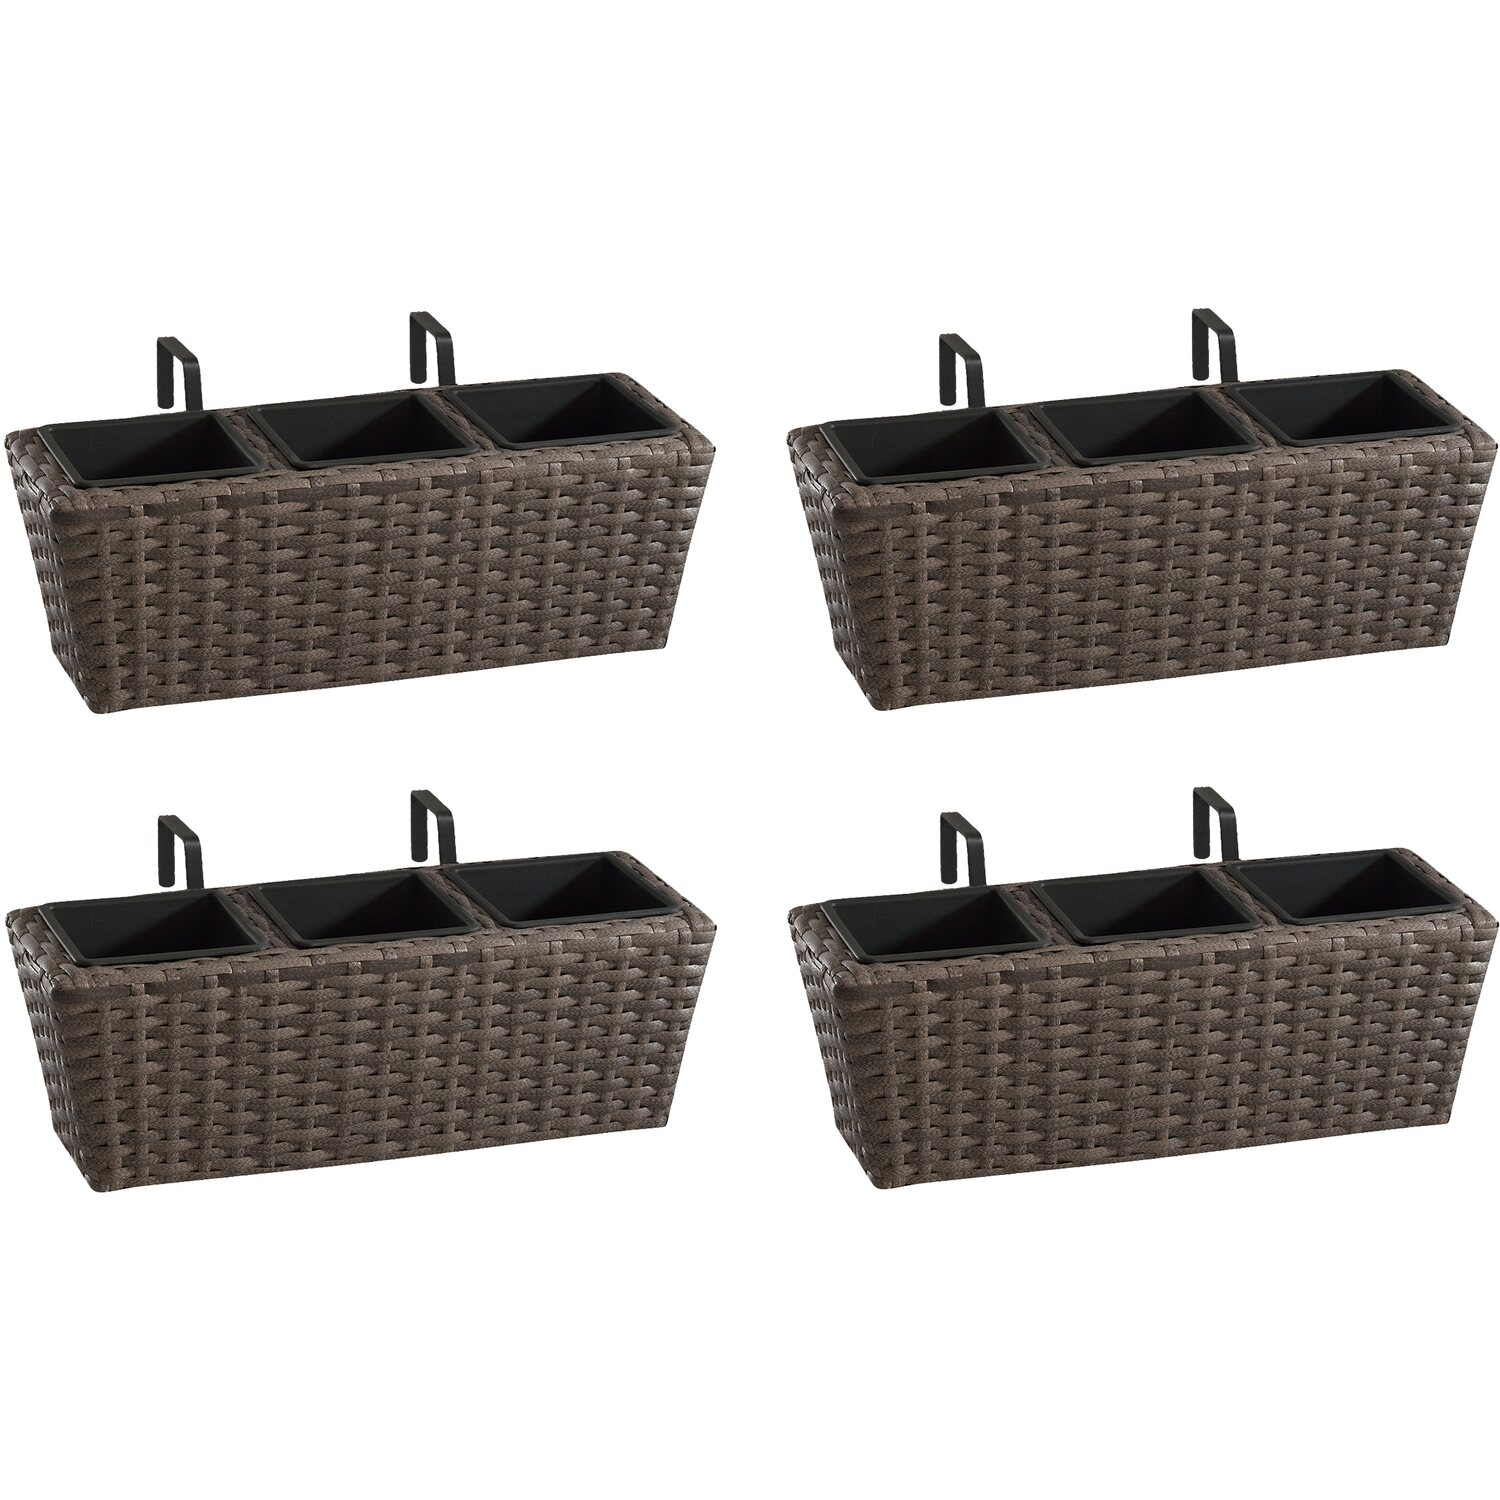 gartenfreude balkonkasten polyrattan 47 cm x 17 cm cappuccino 4er set kaufen bei obi. Black Bedroom Furniture Sets. Home Design Ideas